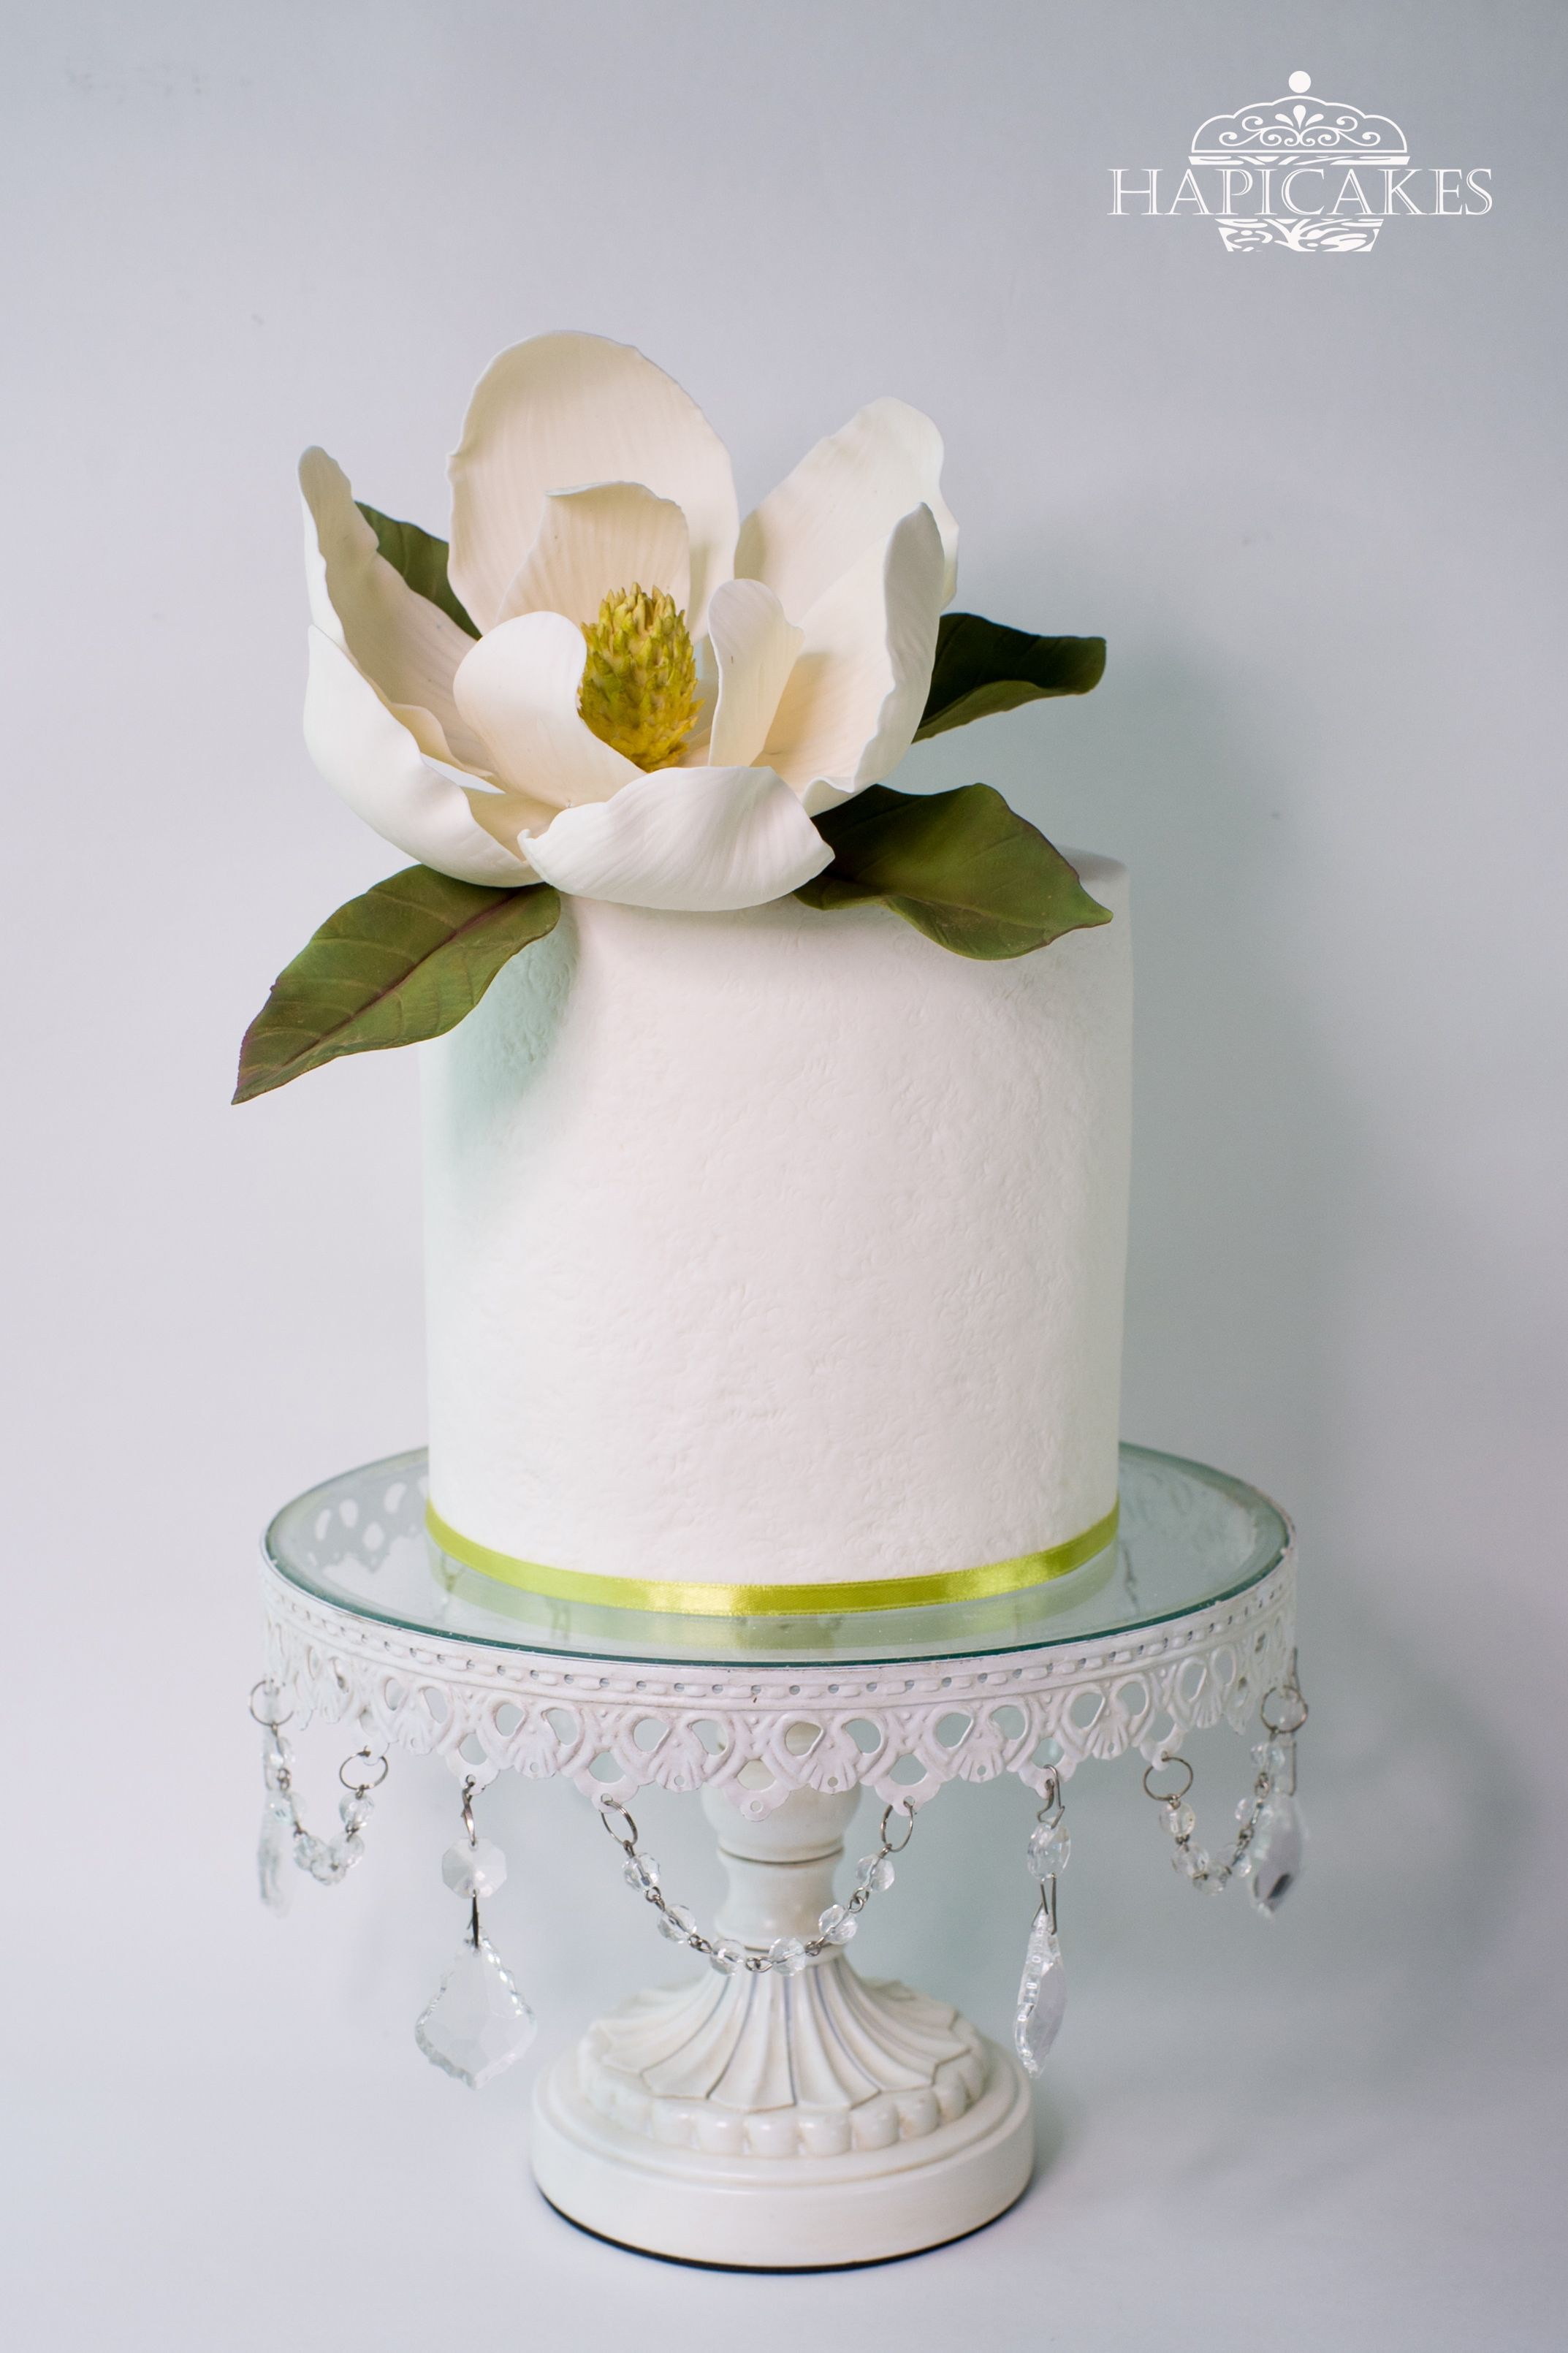 Hapicakes Facebook Magnolia Cake Wedding Cakes With Cupcakes Beautiful Cakes